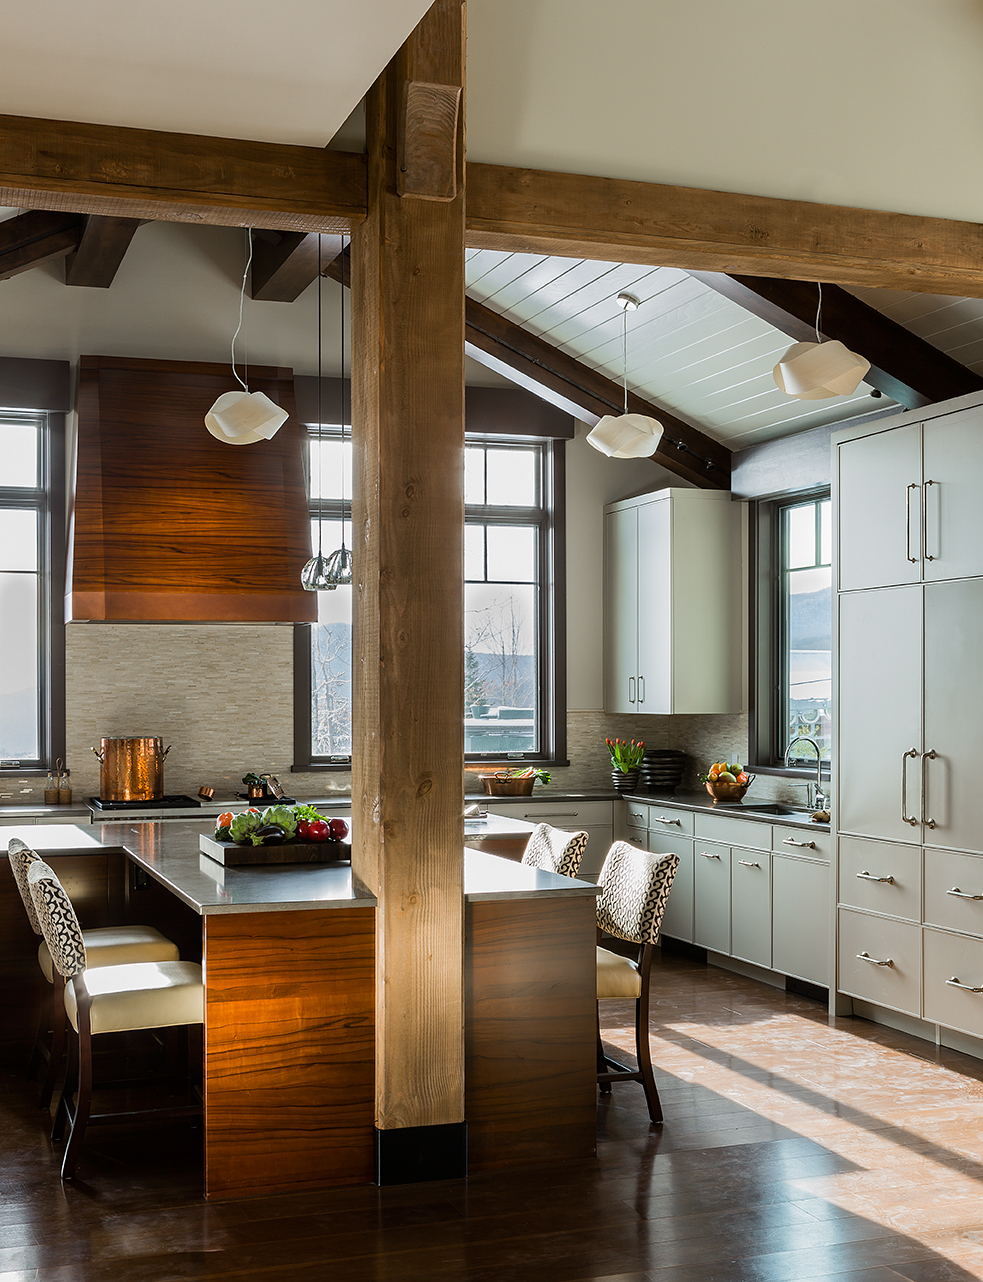 1 Taylor-Stowe_Kitchen with Beam.jpg